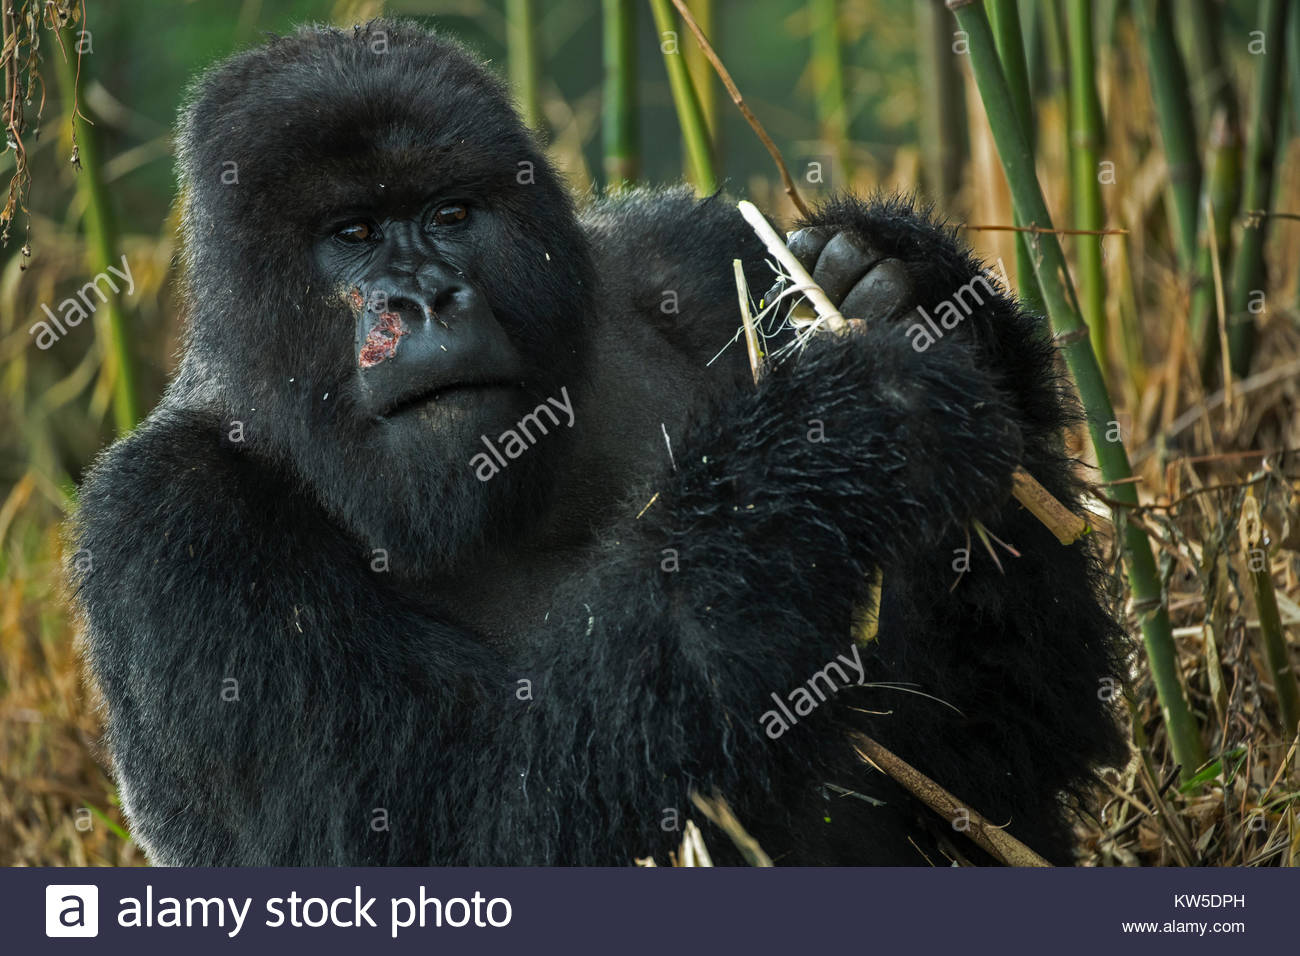 Mountain gorillas leave the forest to feed on bamboo, planted as building material by villagers. - Stock Image